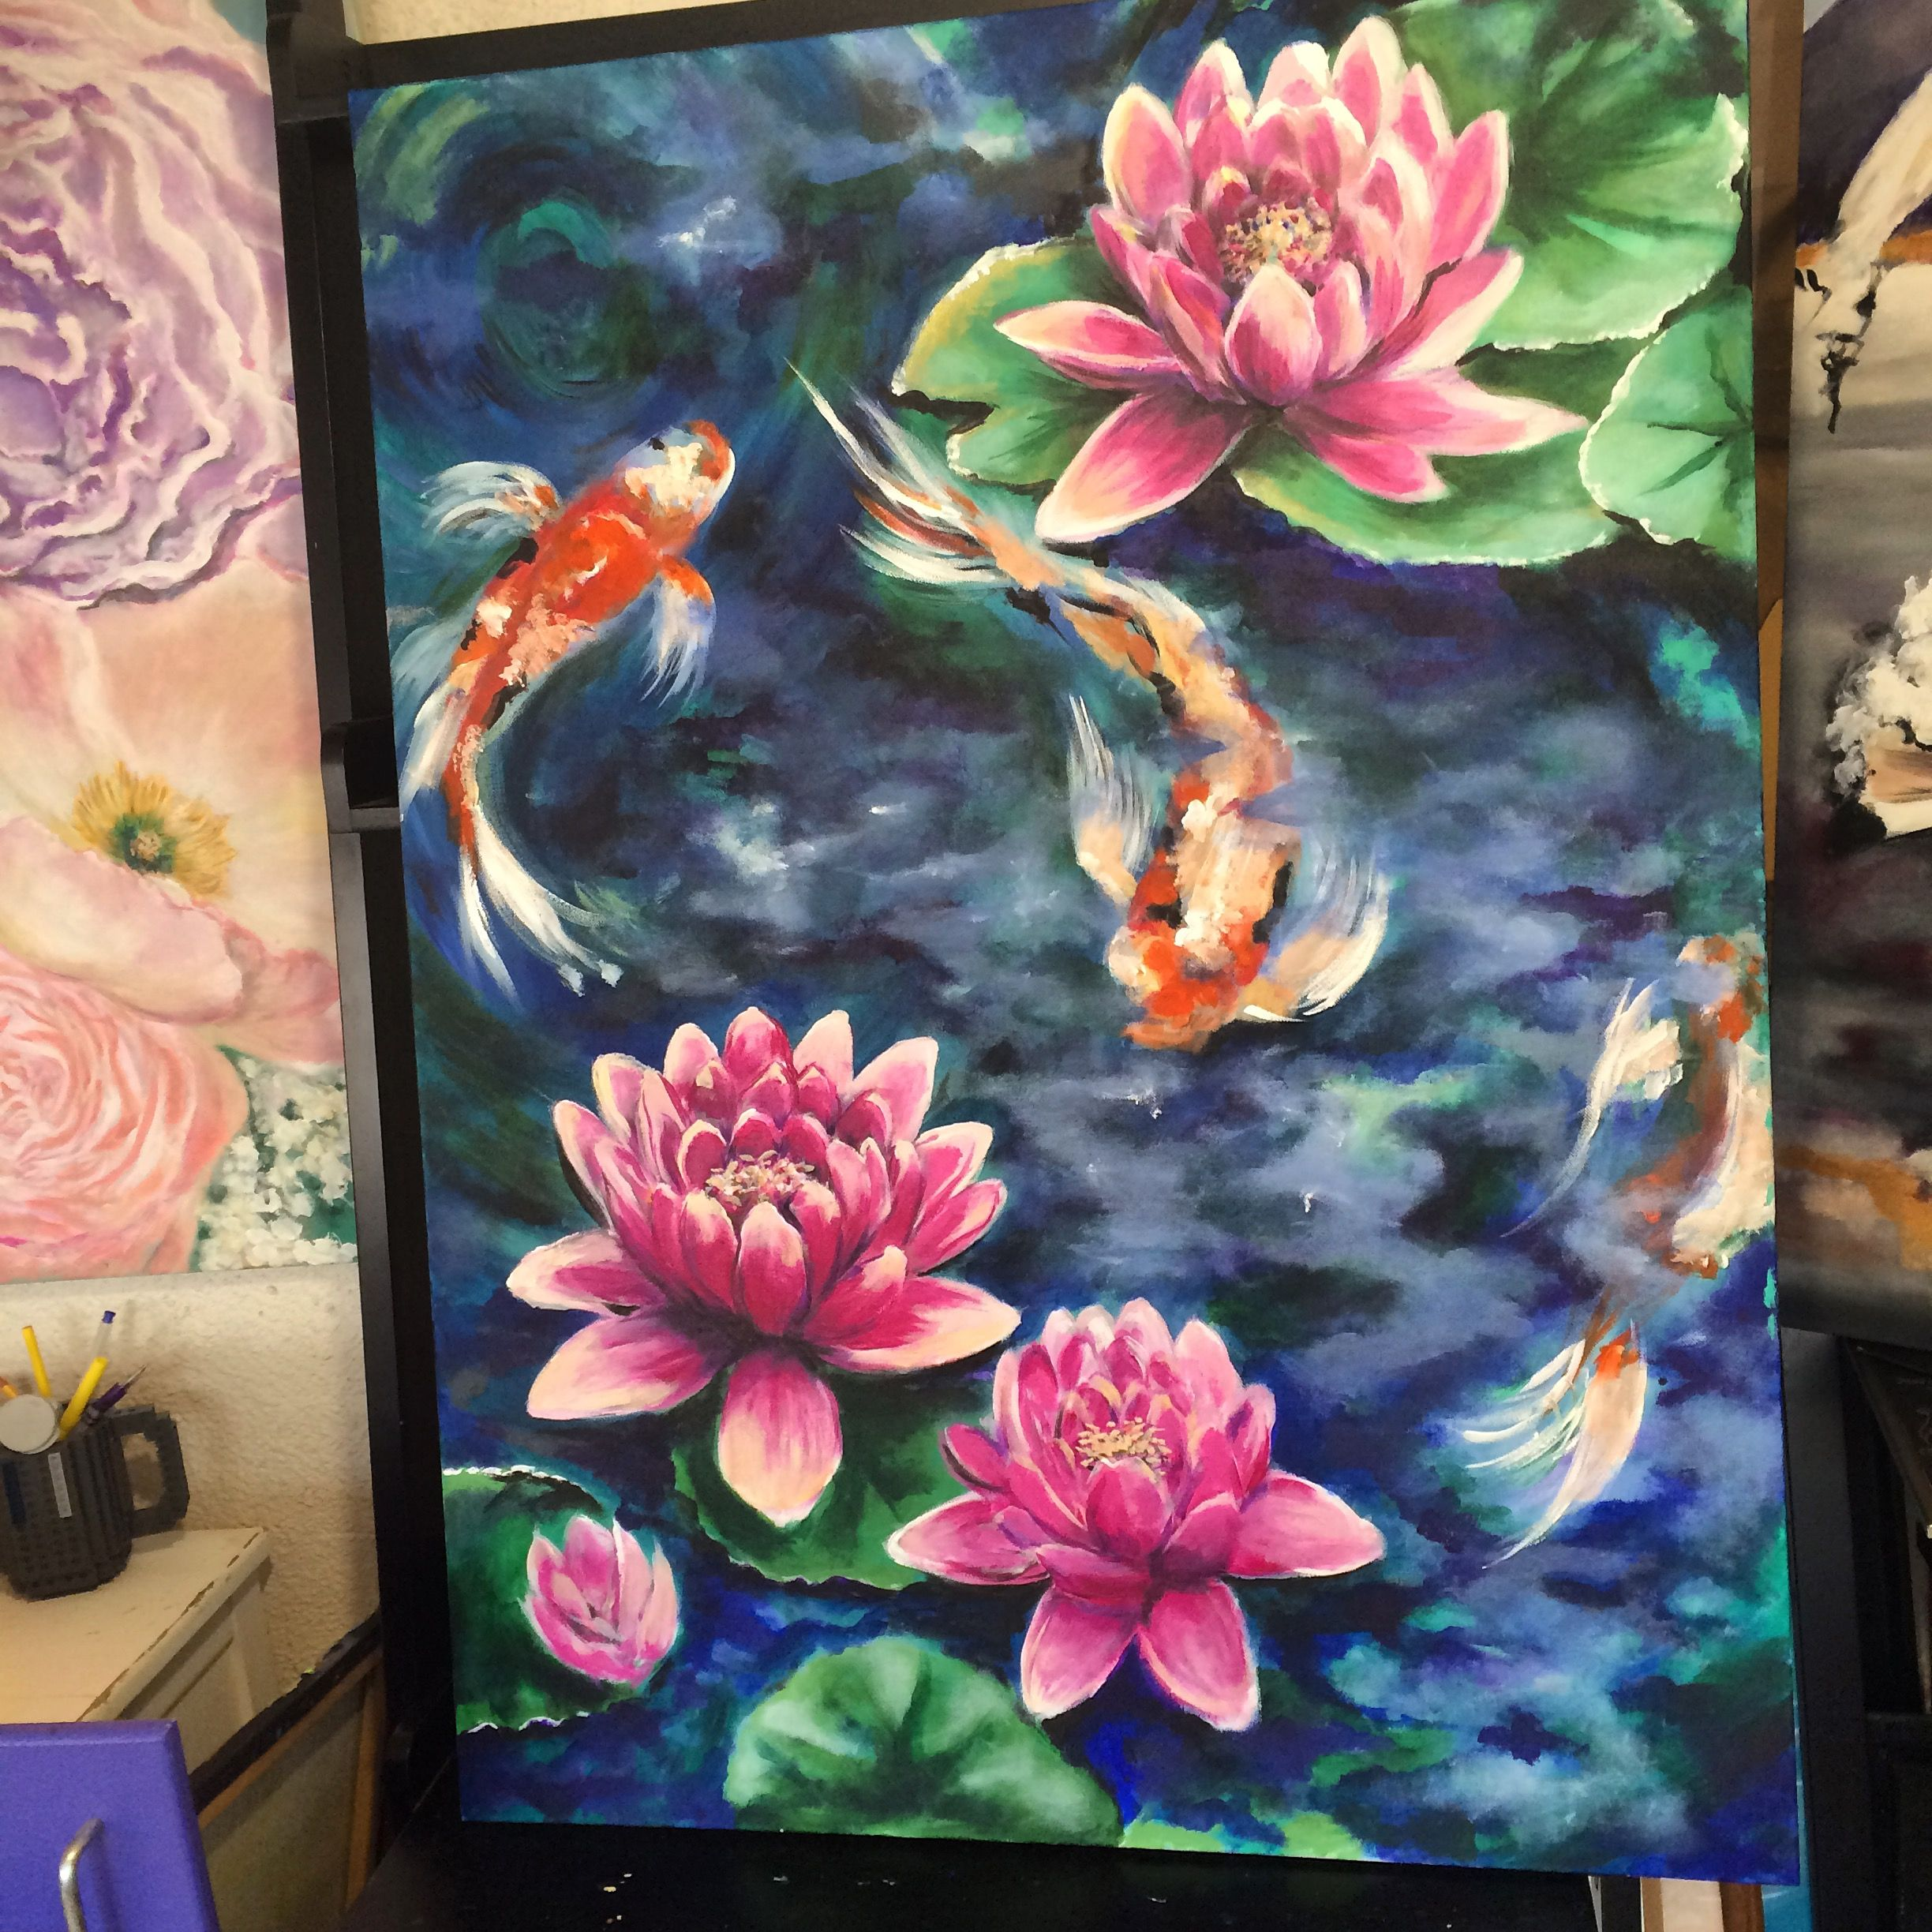 Koi fish pond with lotus flowers surrounding colorful for Koi artwork on canvas